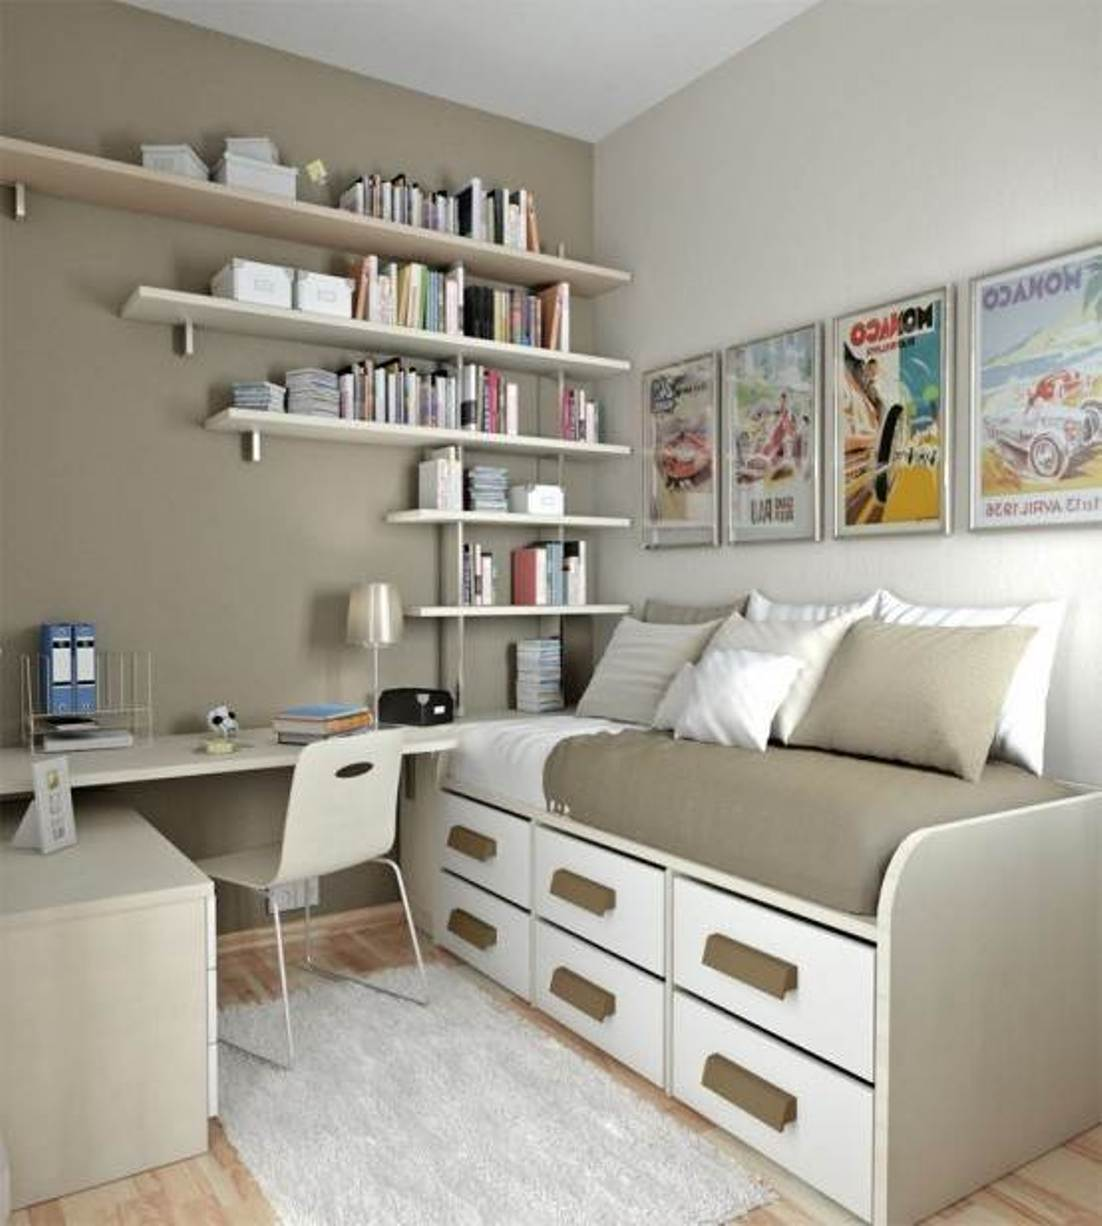 30 Clever Space-Saving Design Ideas For Small Homes ... on Bedroom Ideas For Small Spaces  id=82897